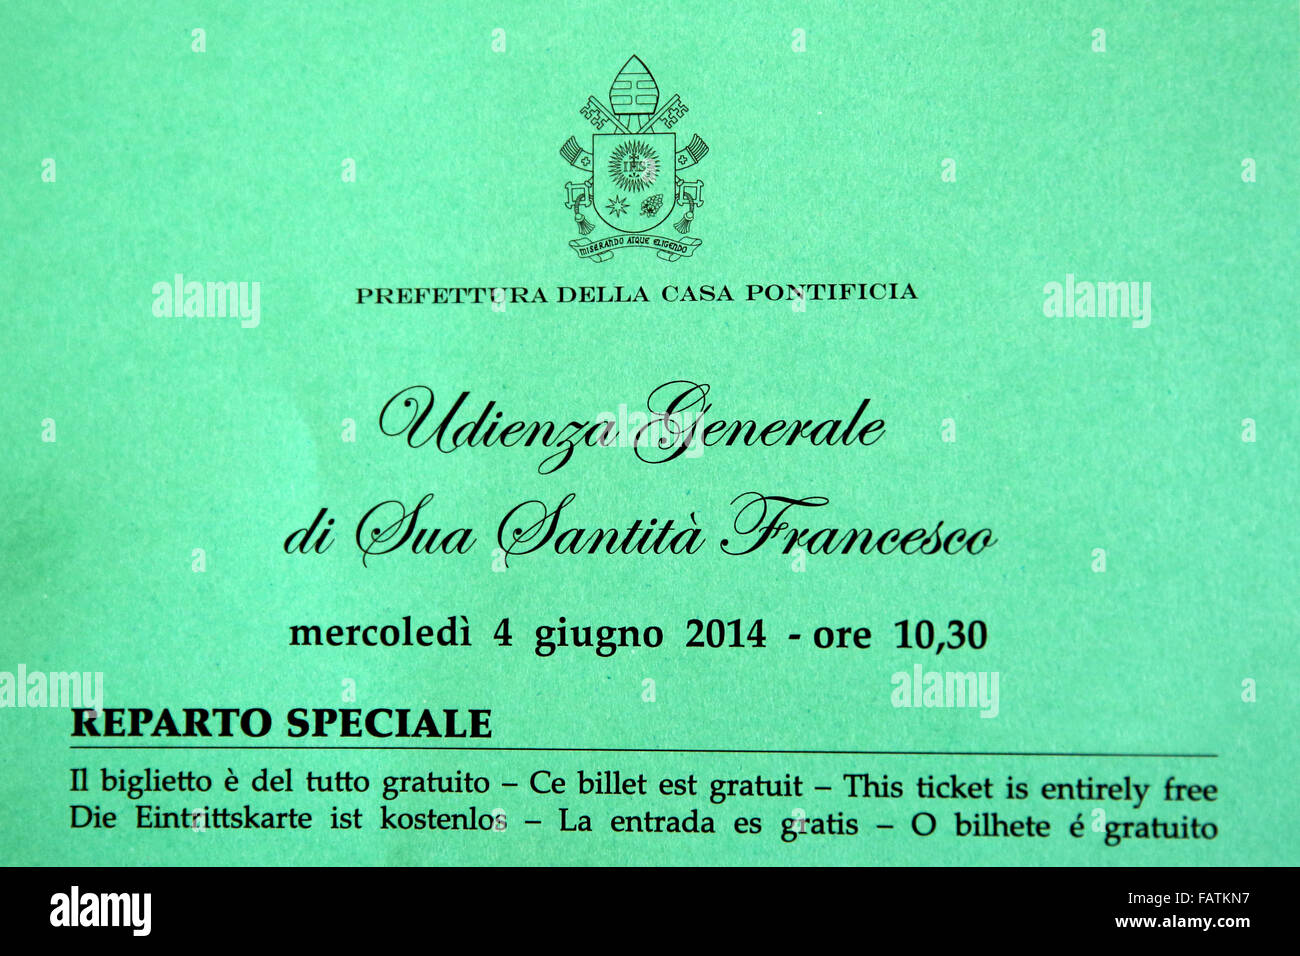 Ticket to a general audience with Pope Francis held weekly on Wednesdays in St Peters Square - Stock Image